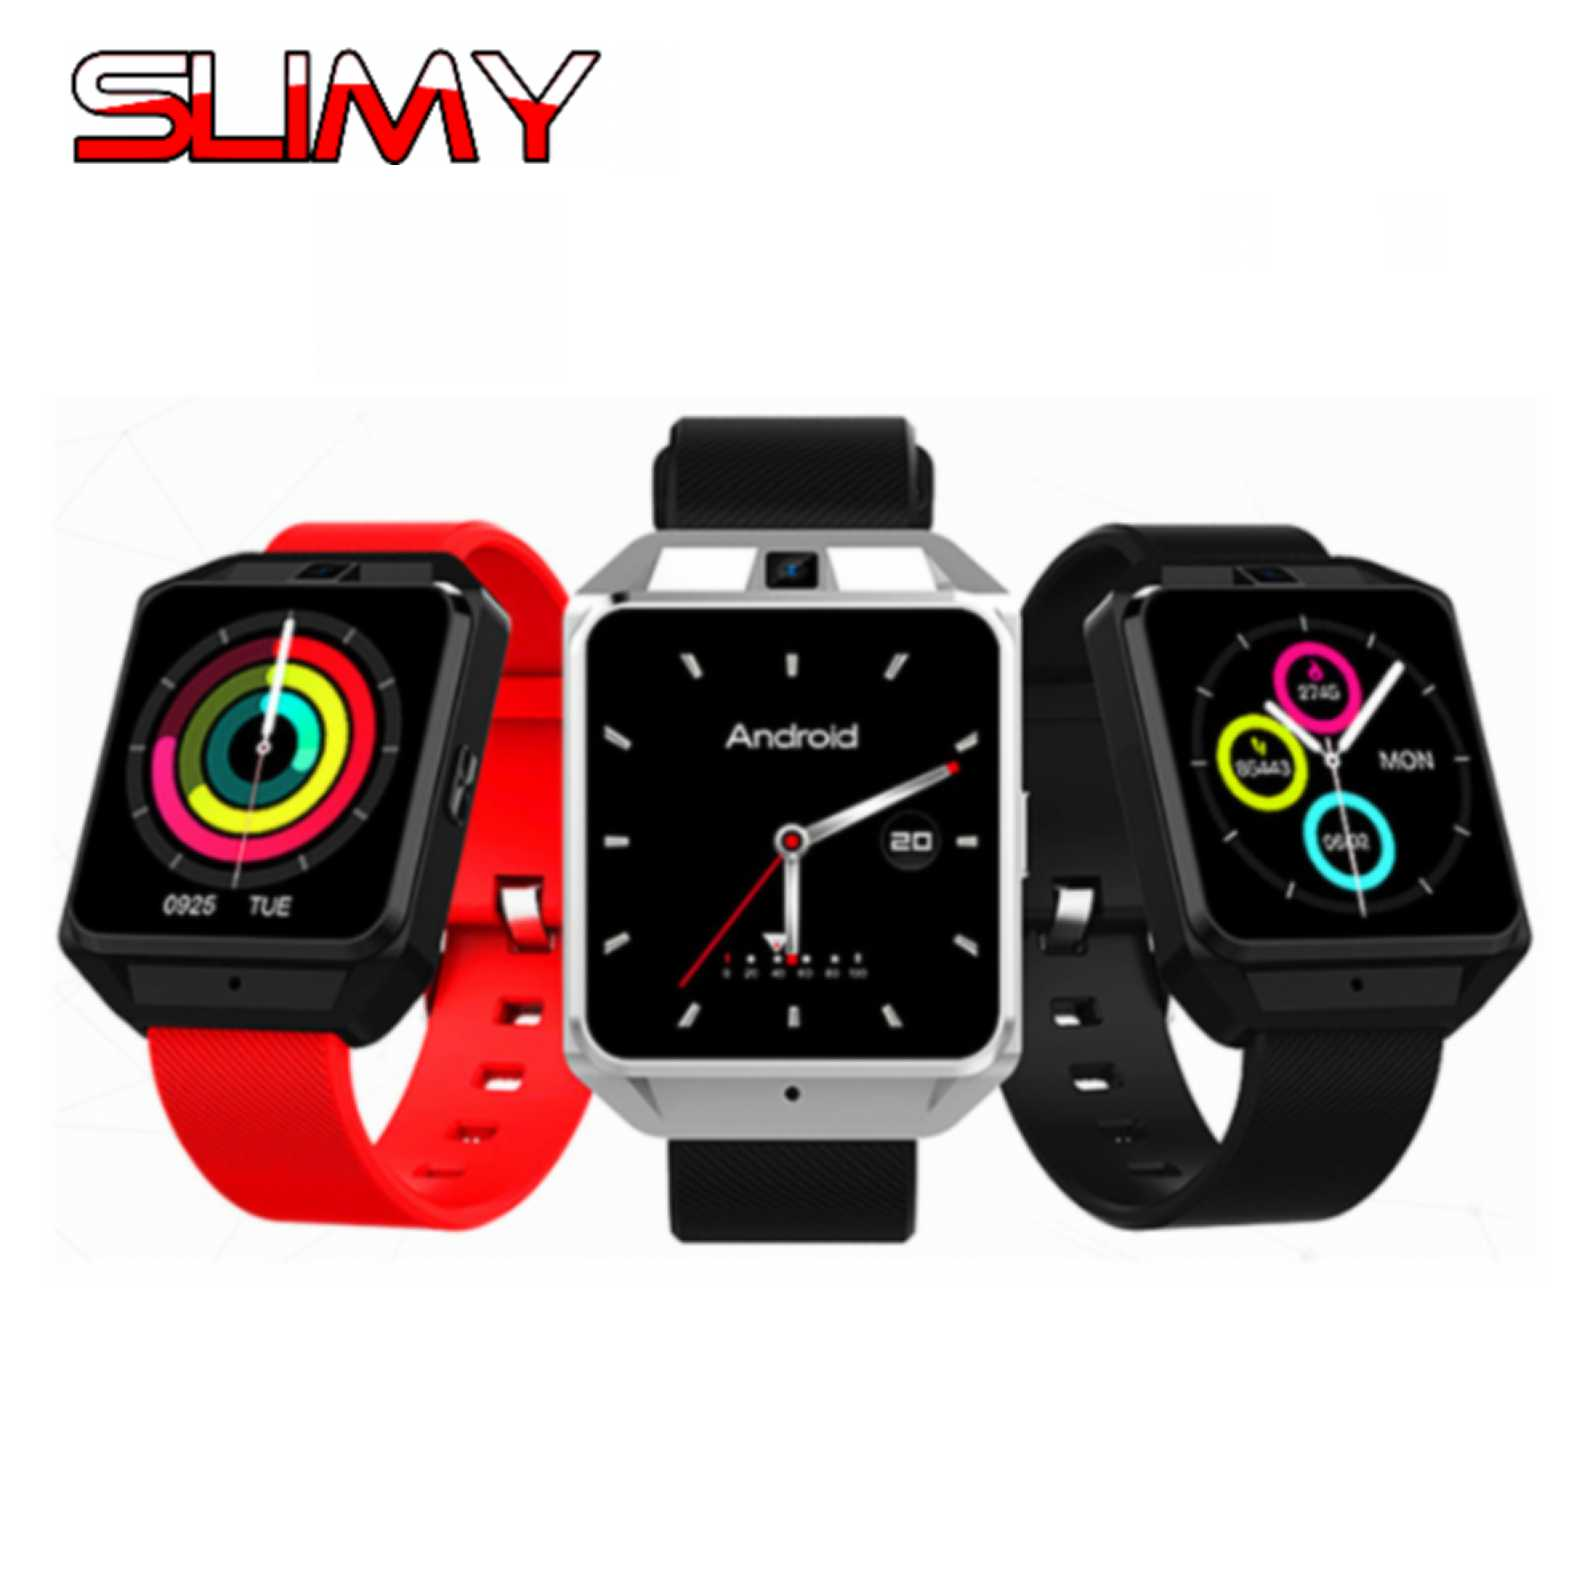 Slimy New 4G Smart Watch SH05 MTK6737 Android 6.0 Watch Phone With SIM Card Heart Rate GPS 5PM Camera Smartwatch for Men Women 4g gps android 6 0 smart watch m5 mtk6737 heart rate monitor support sim card camera business smartwatch for men women 2018 gift